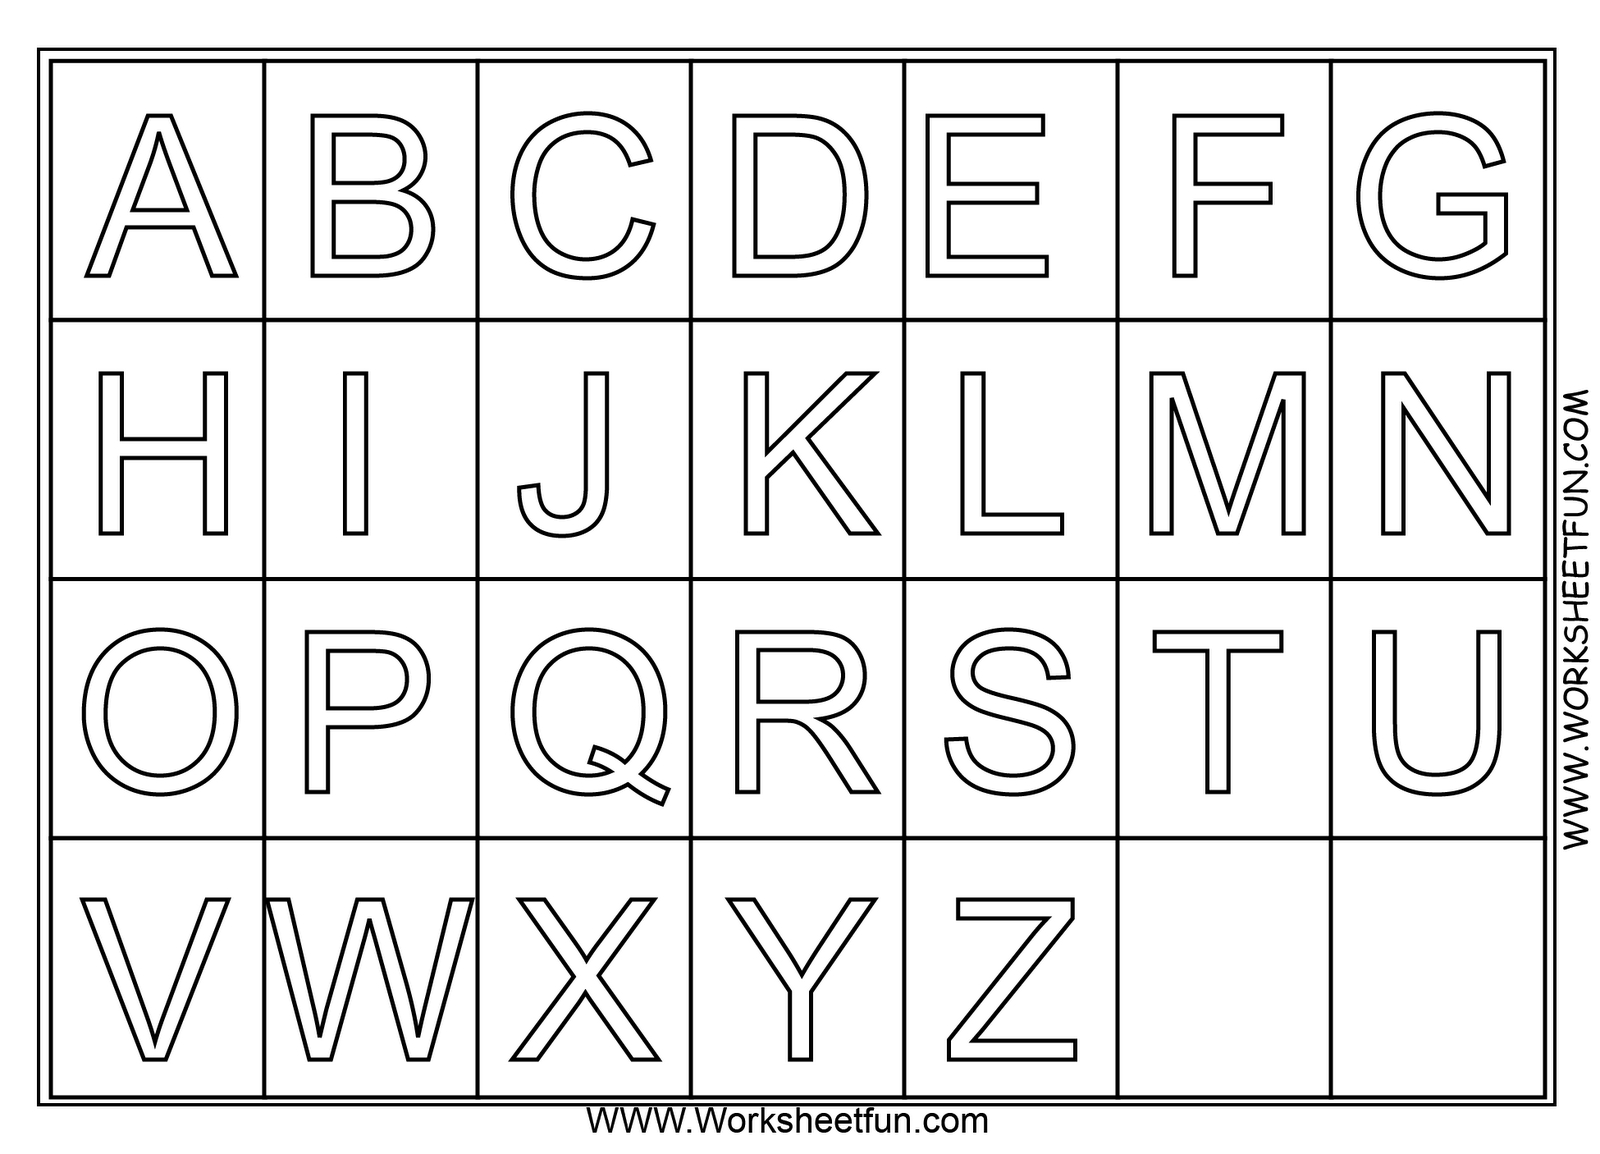 A Z Alphabet Coloring Pages Download And Print For Free throughout Alphabet Worksheets Free Download